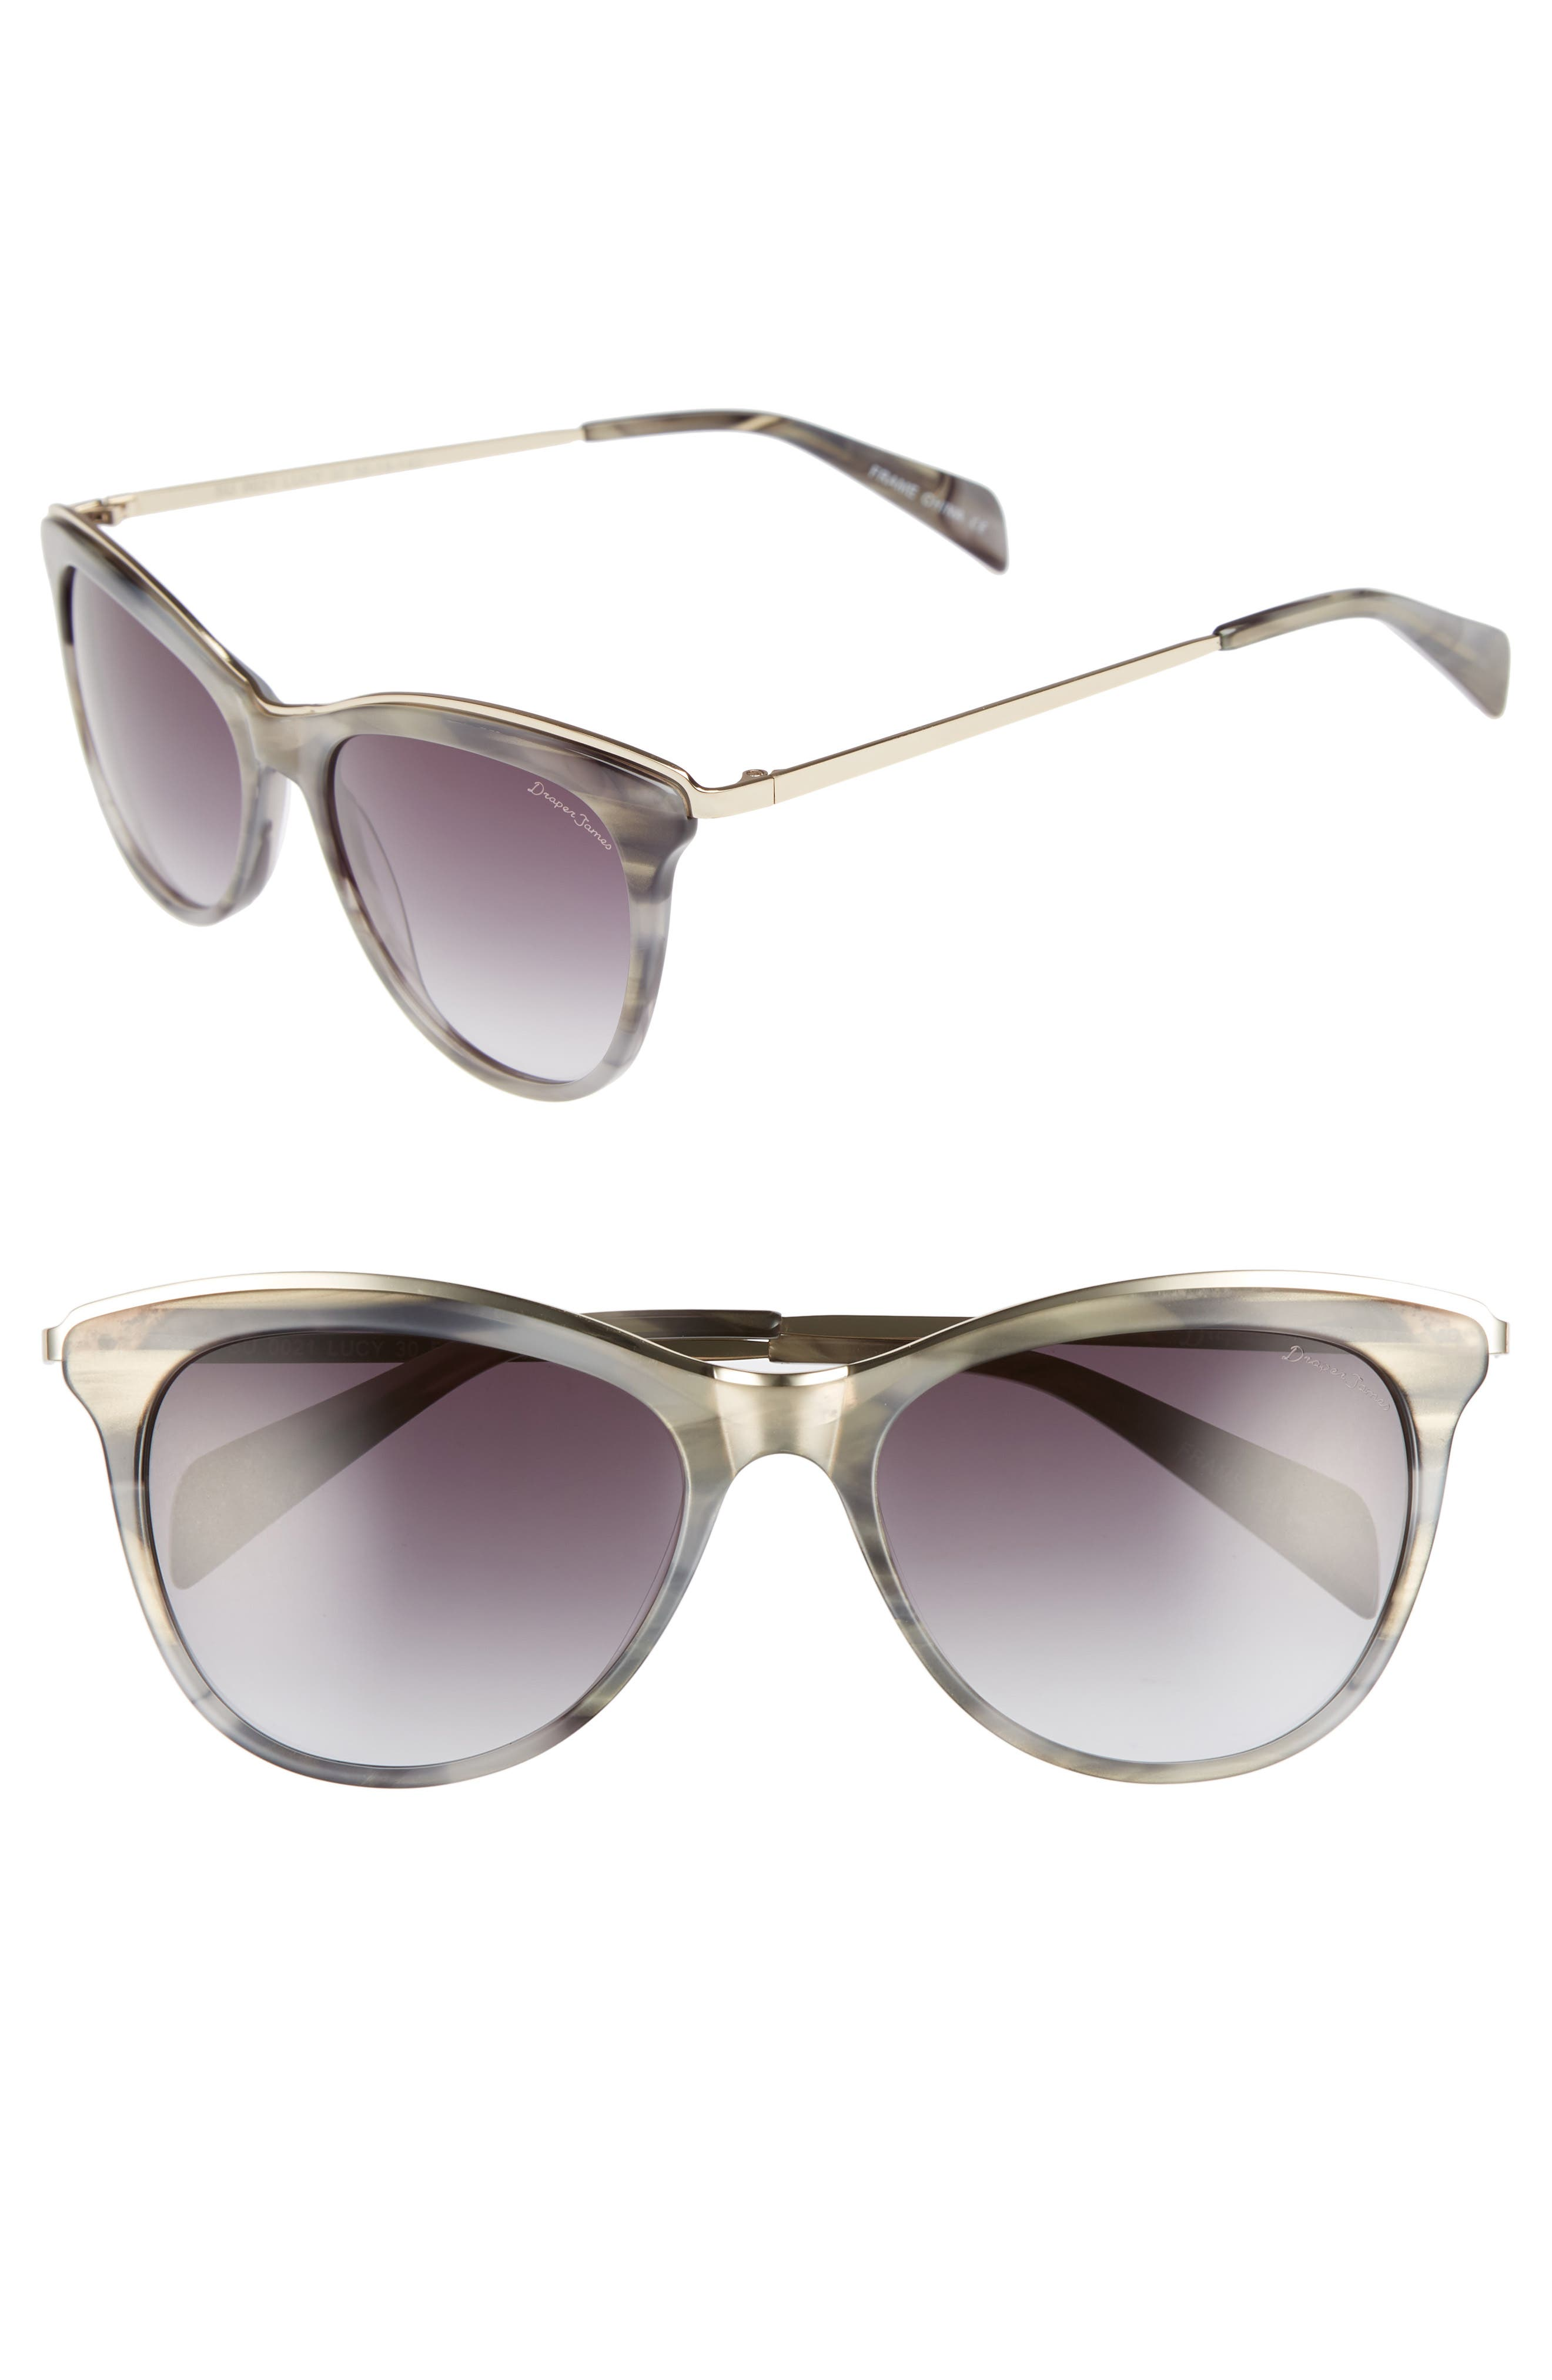 56mm Cat Eye Sunglasses,                             Main thumbnail 1, color,                             GREY